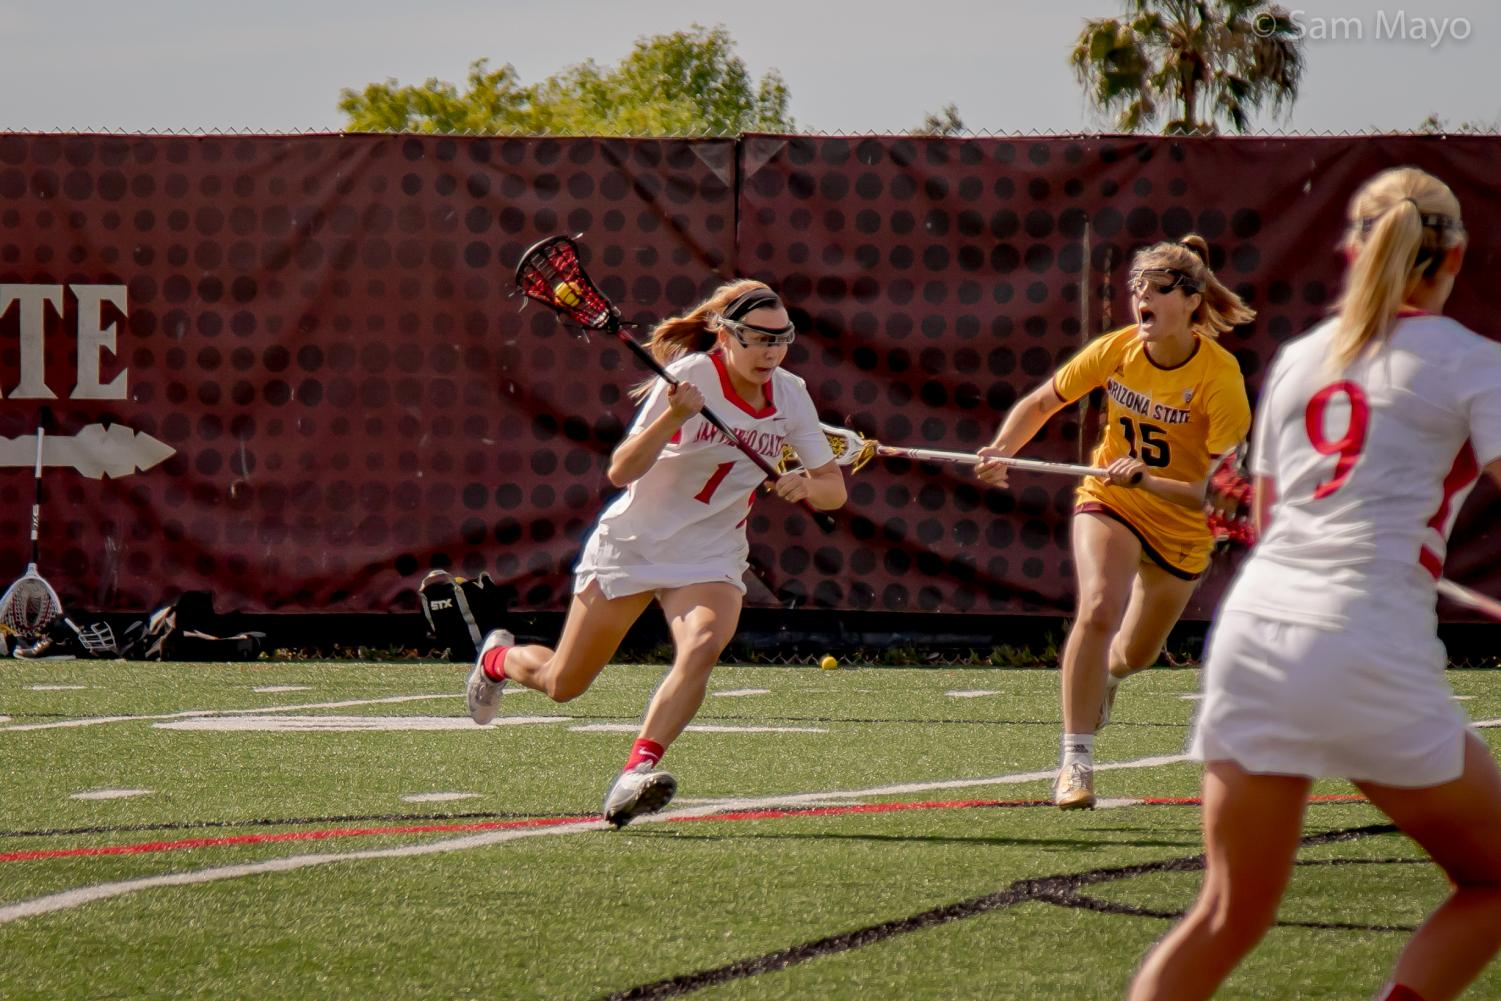 Natalie Peel drives the ball up field during the Aztecs 14-13 victory over Arizona State on Feb. 17 at the Aztec Lacrosse Field.